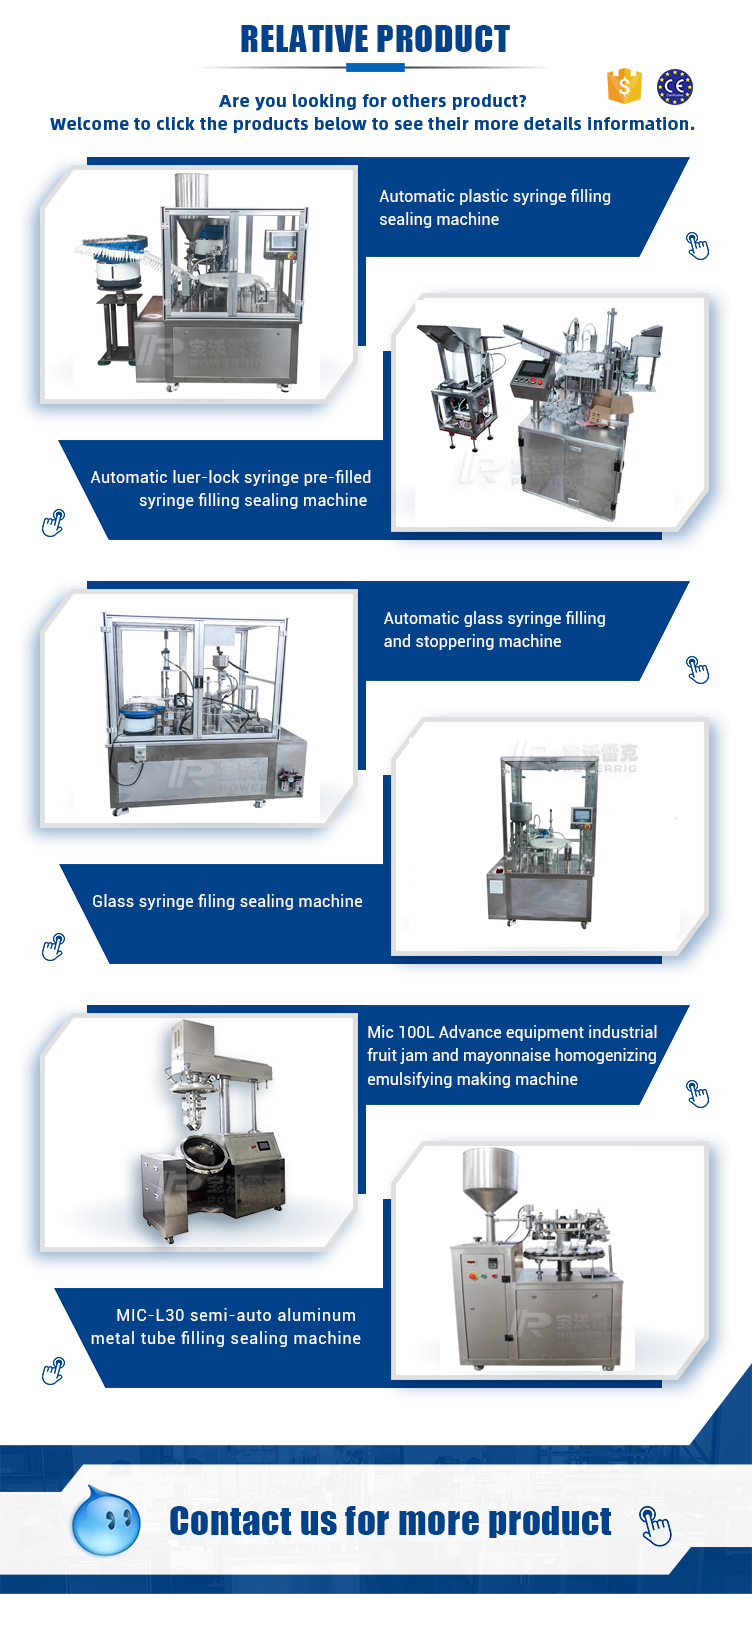 Automatic high speed loading glass syringe filling plugging machine filling capping machine for machine